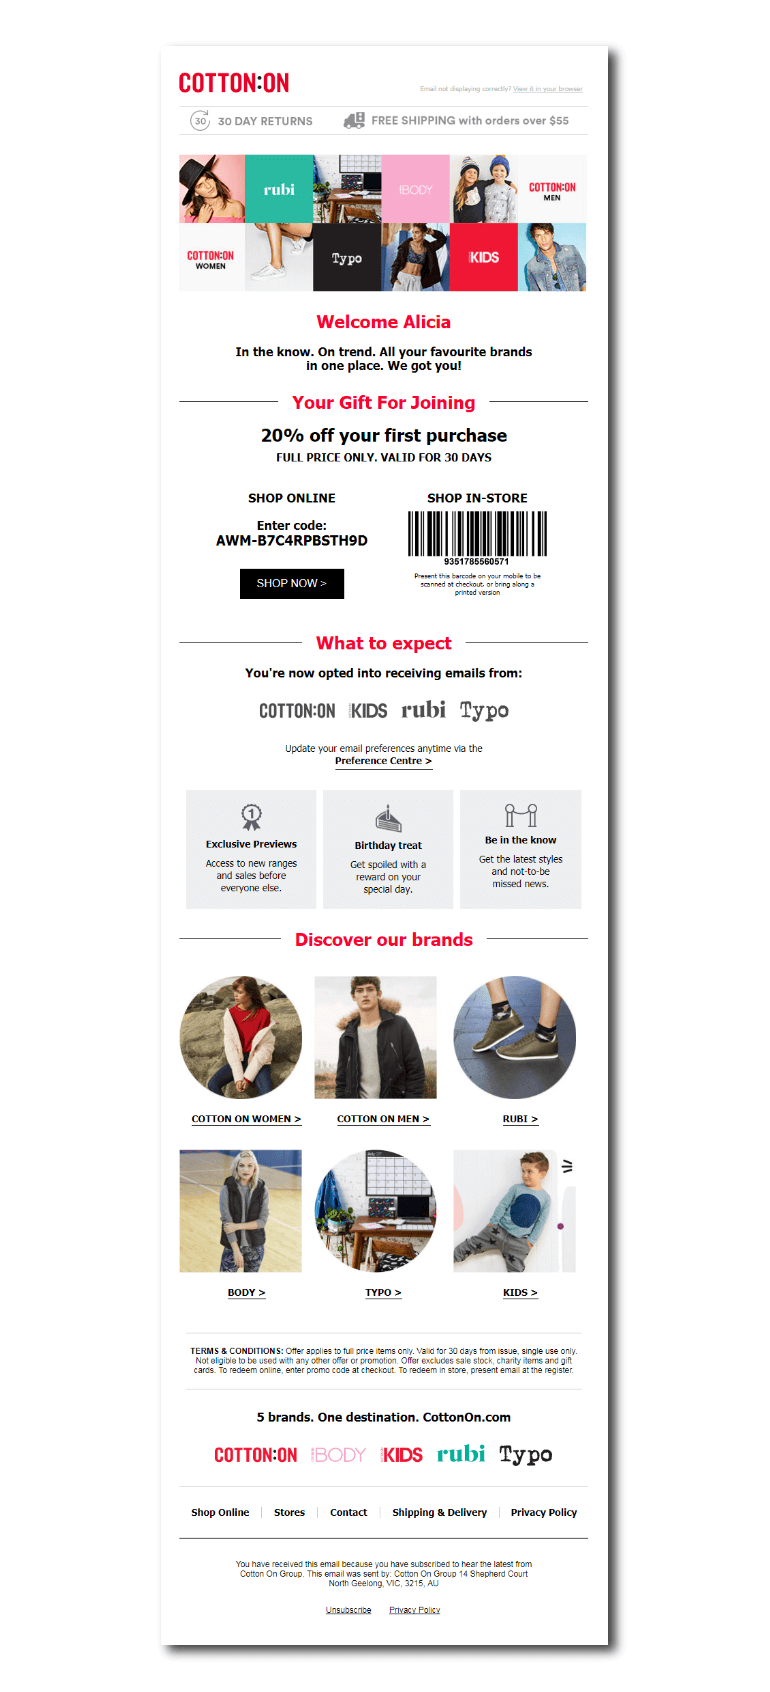 Example of a welcome email from Cotton On